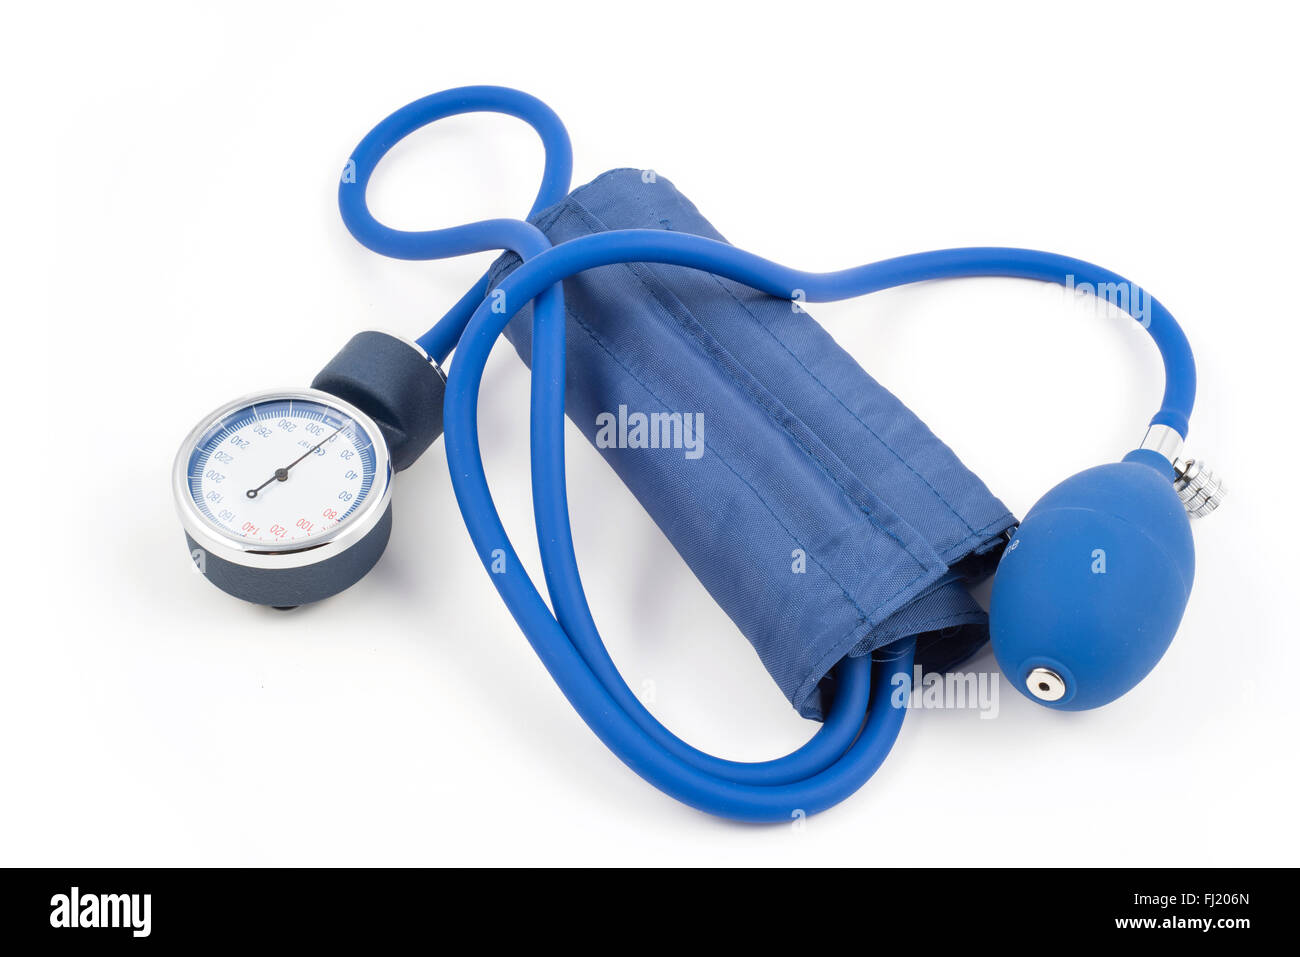 Aneroid sphygmomanometer on white background - Stock Image